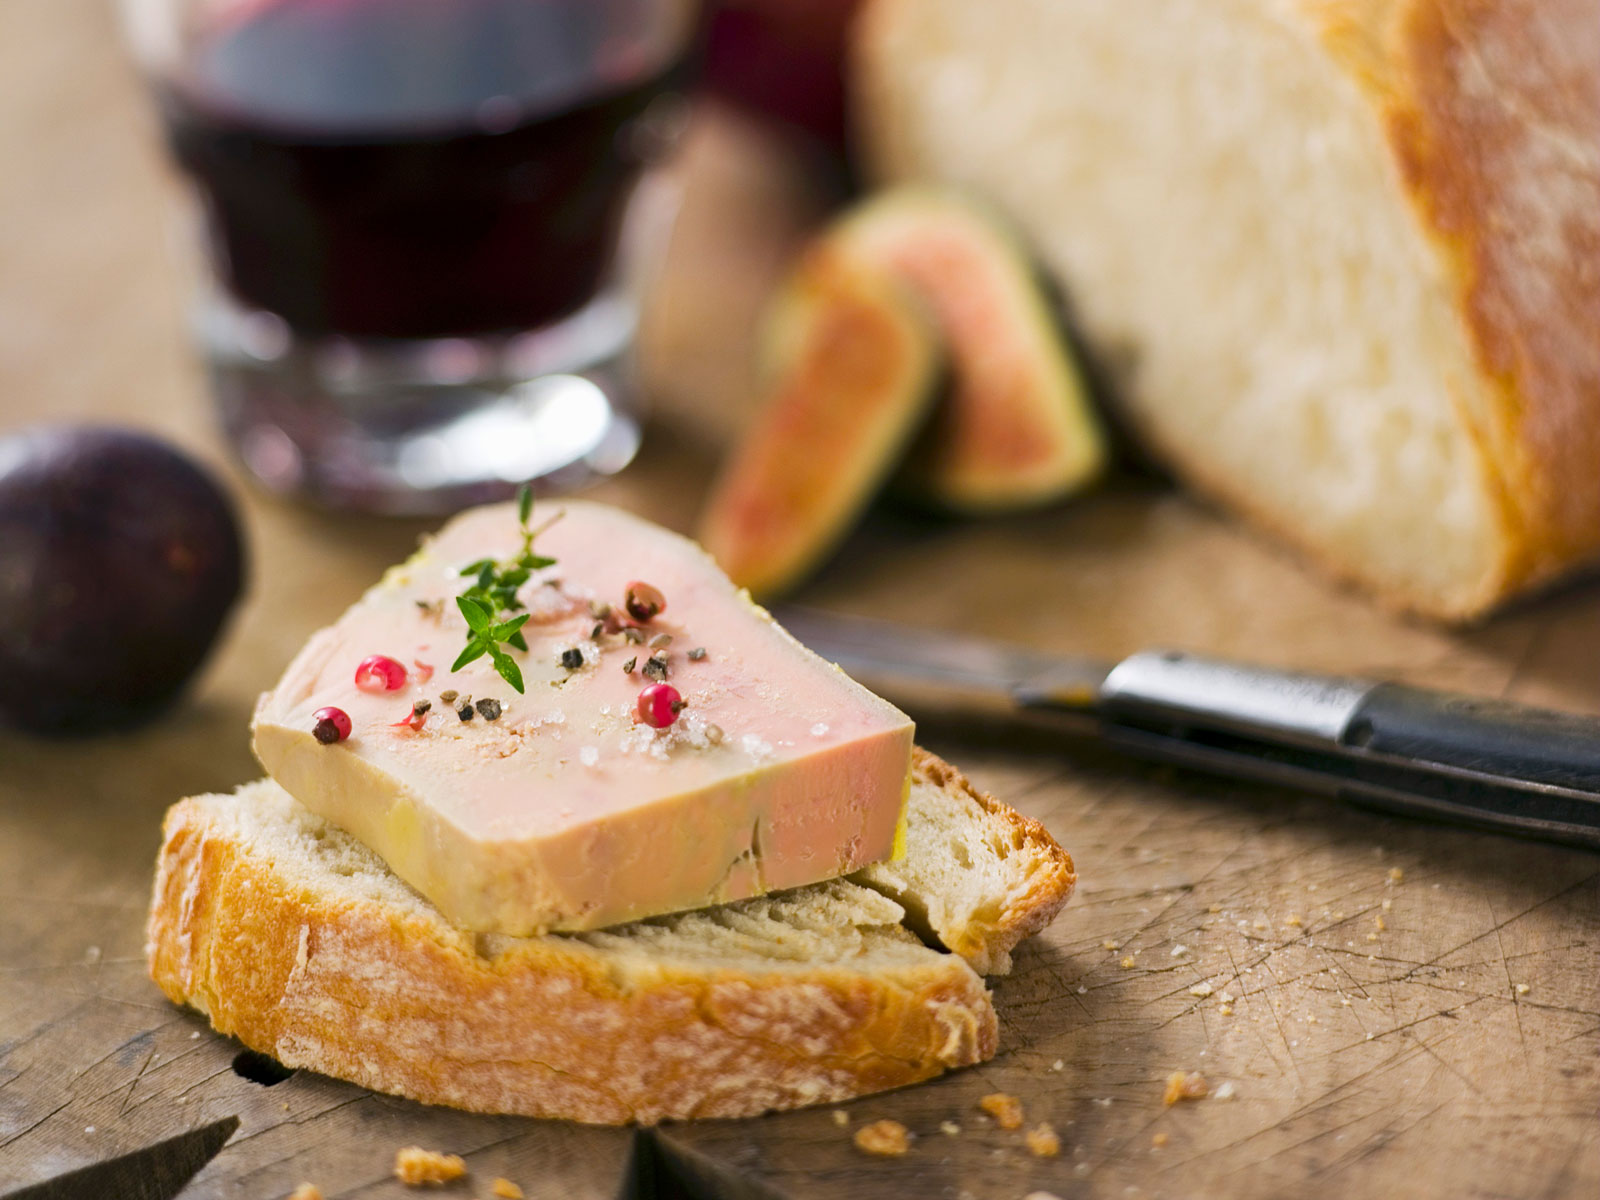 The Fight Over California's Foie Gras Ban Isn't Done Yet